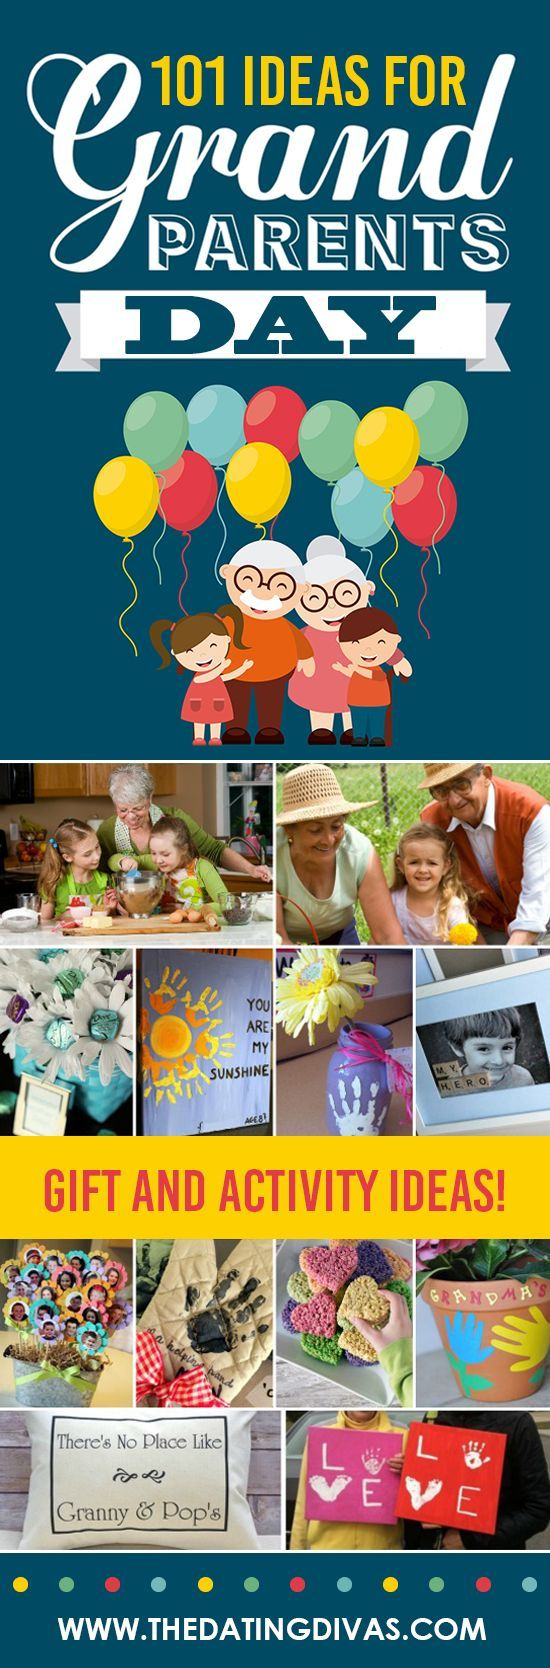 101 Grandparents Day Ideas - From #bestgiftsforgrandparents 101 Ideas for Grandparents Day! Fun activities and gifts for kids to give and do with grandma and grandpa! #grandparentsdaycrafts